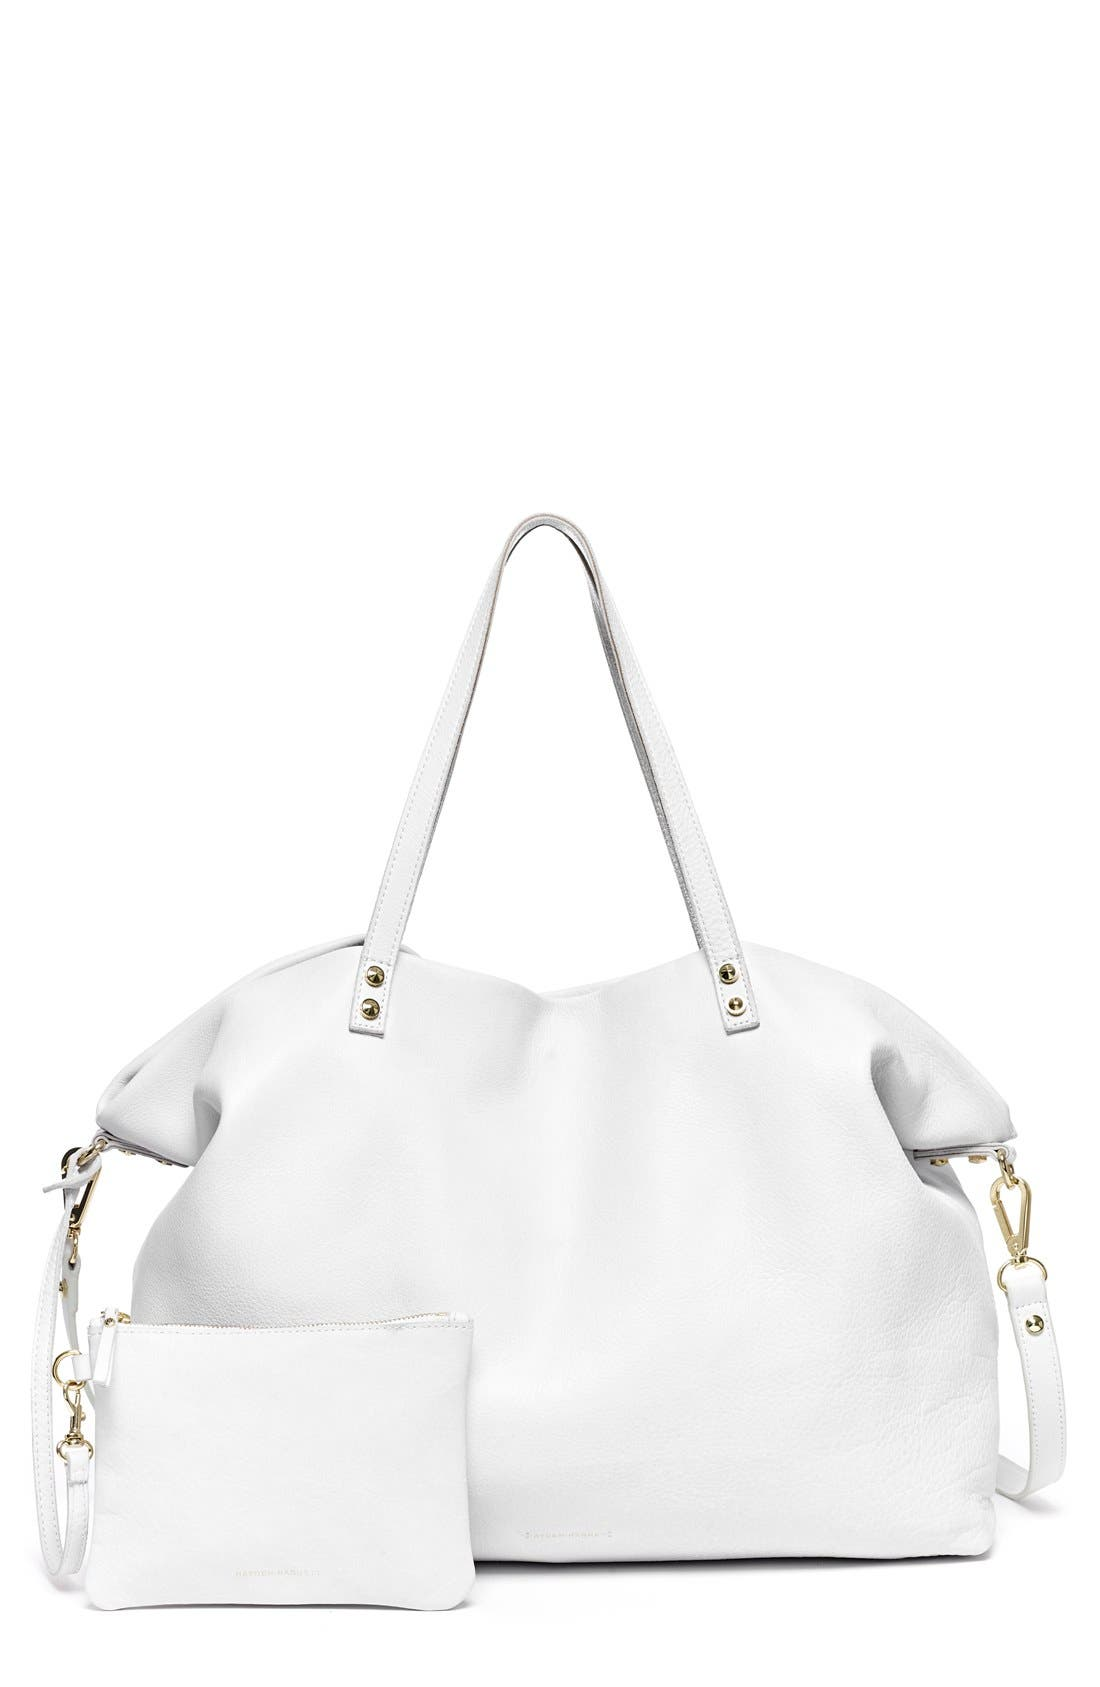 Main Image - Hayden-Harnett 'Two-Way' Reversible Leather Tote